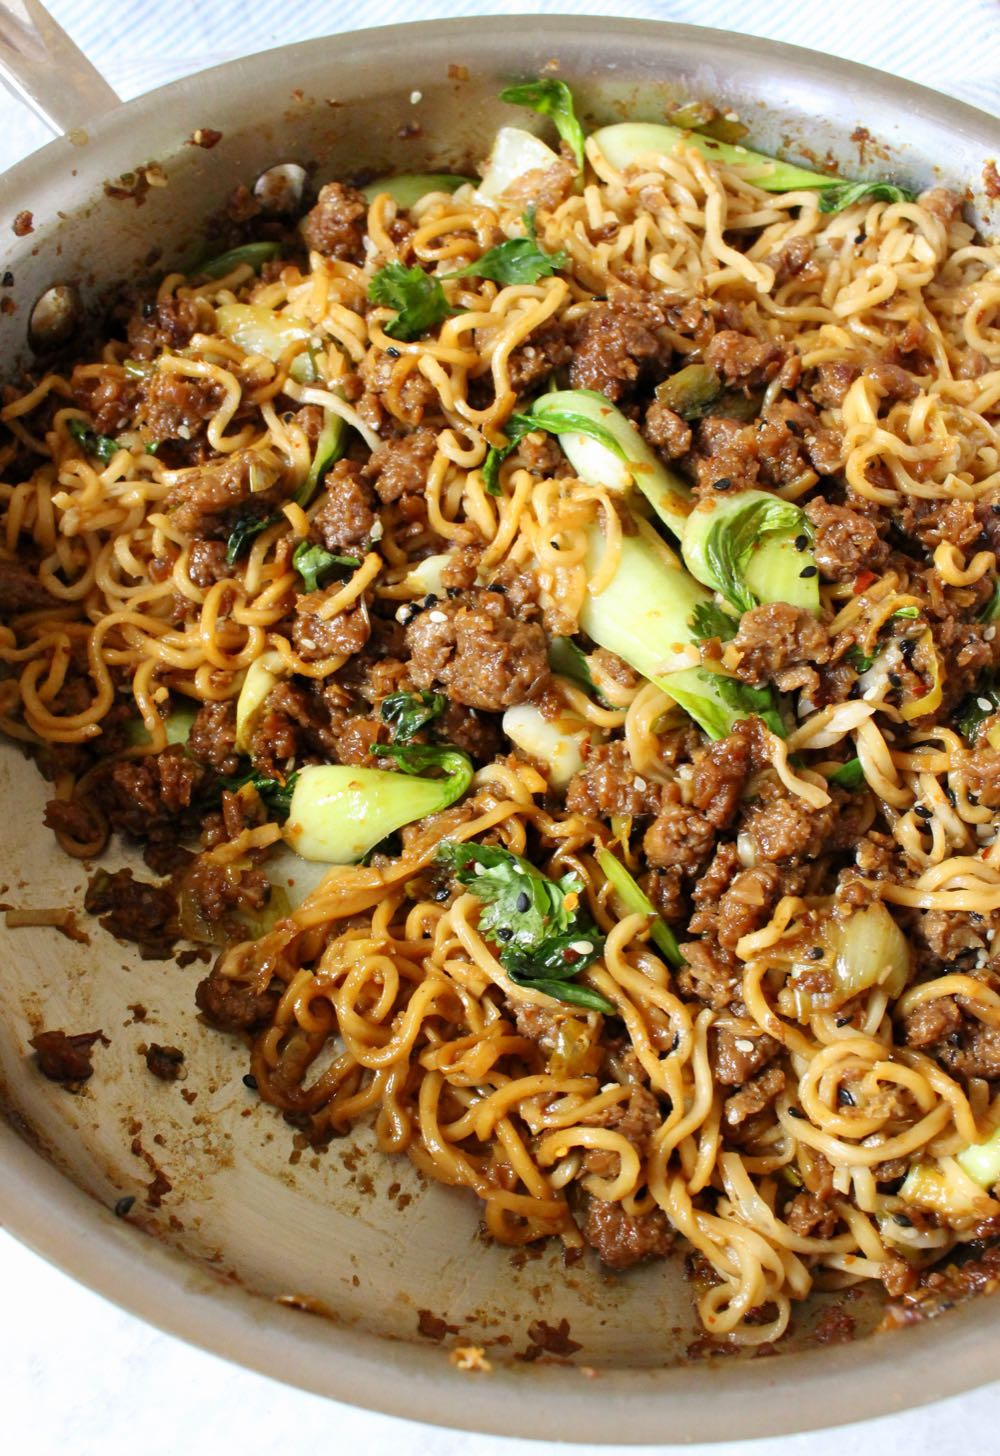 Hearty Vegan Ramen Noodles Skillet with Bok Choy and Beyond Meat